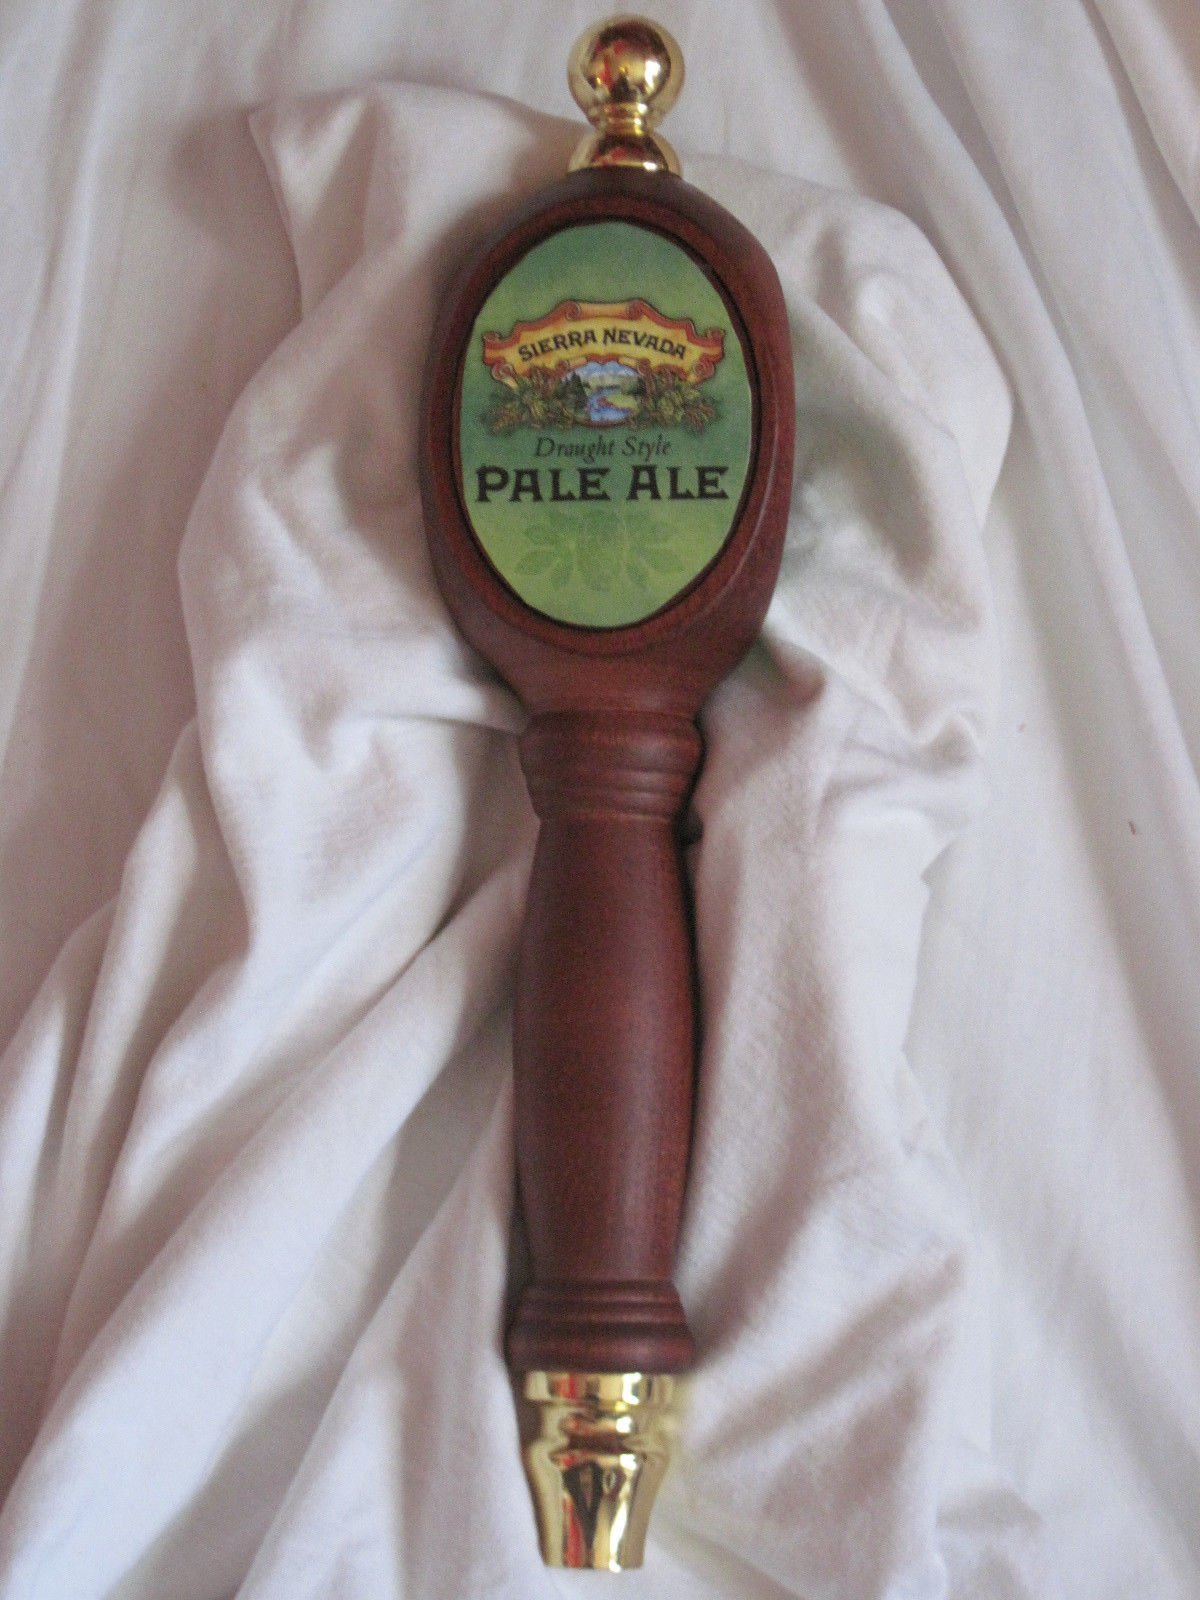 Sierra Nevada Pale Ale Beer Pub Style Tap Handle 13'' Long Beautiful Carved Wood and Nicely Decorated with Brass at the Top & Bottom & Three Sided